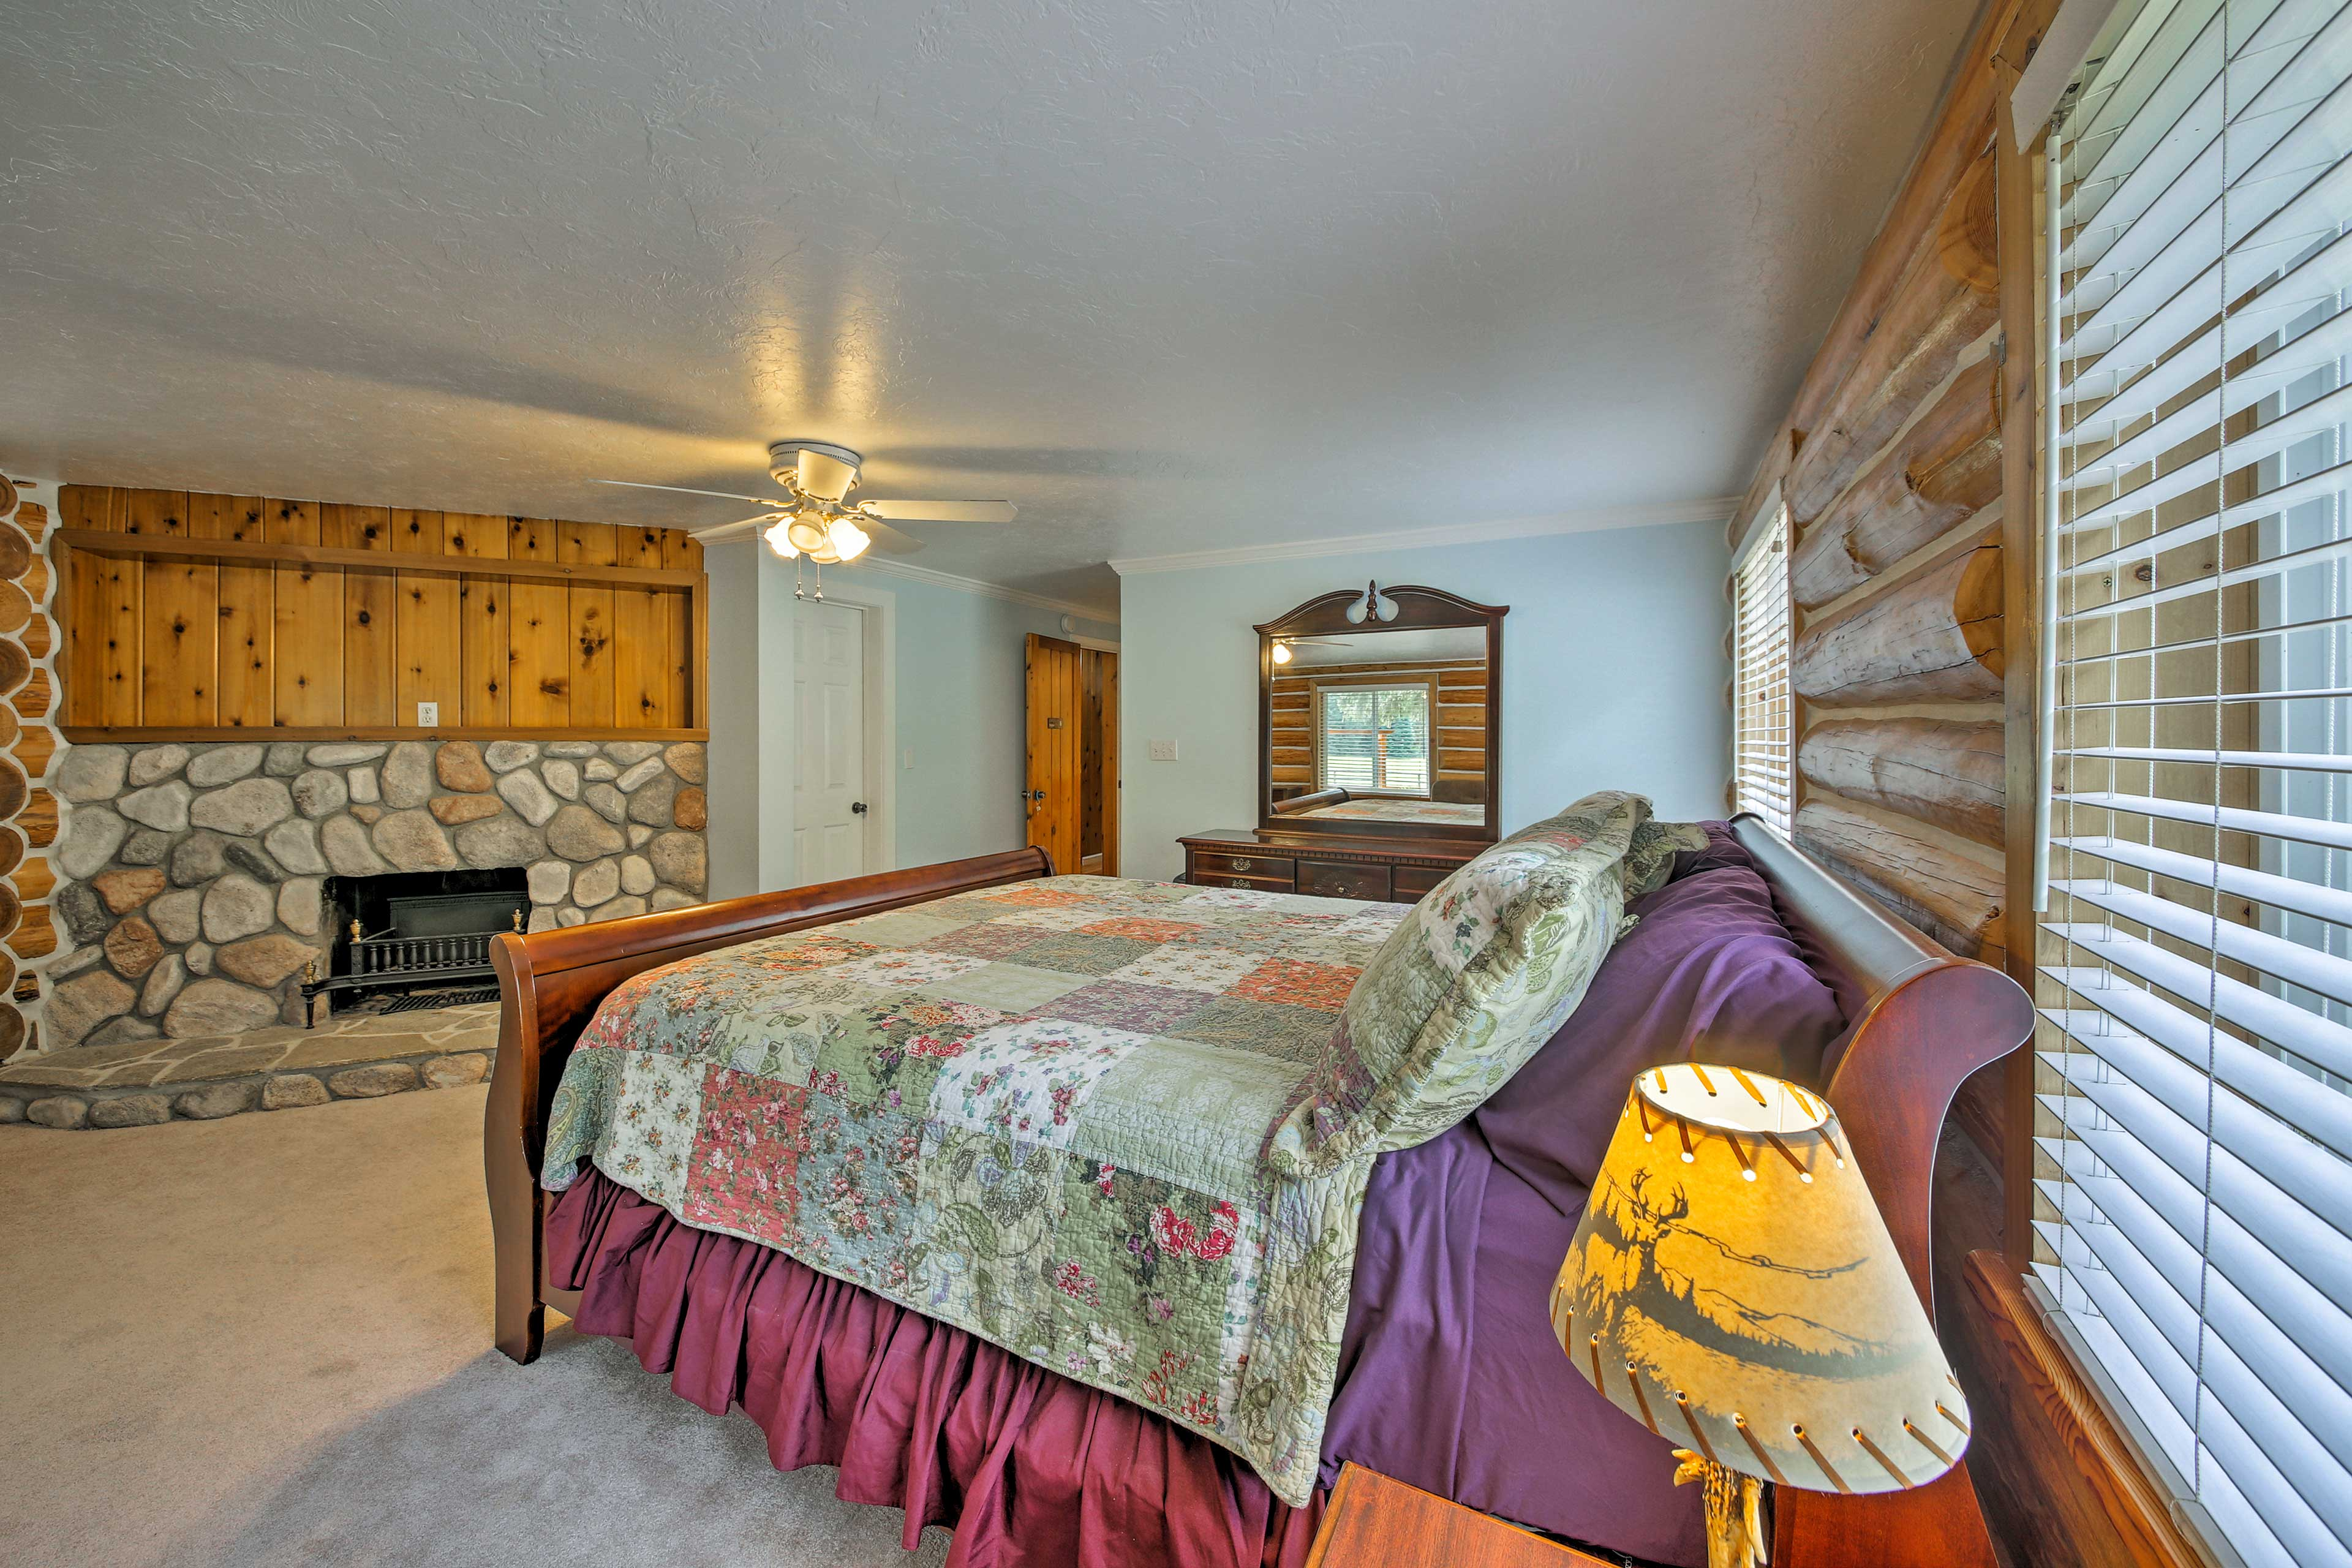 The master bedroom is a private oasis.